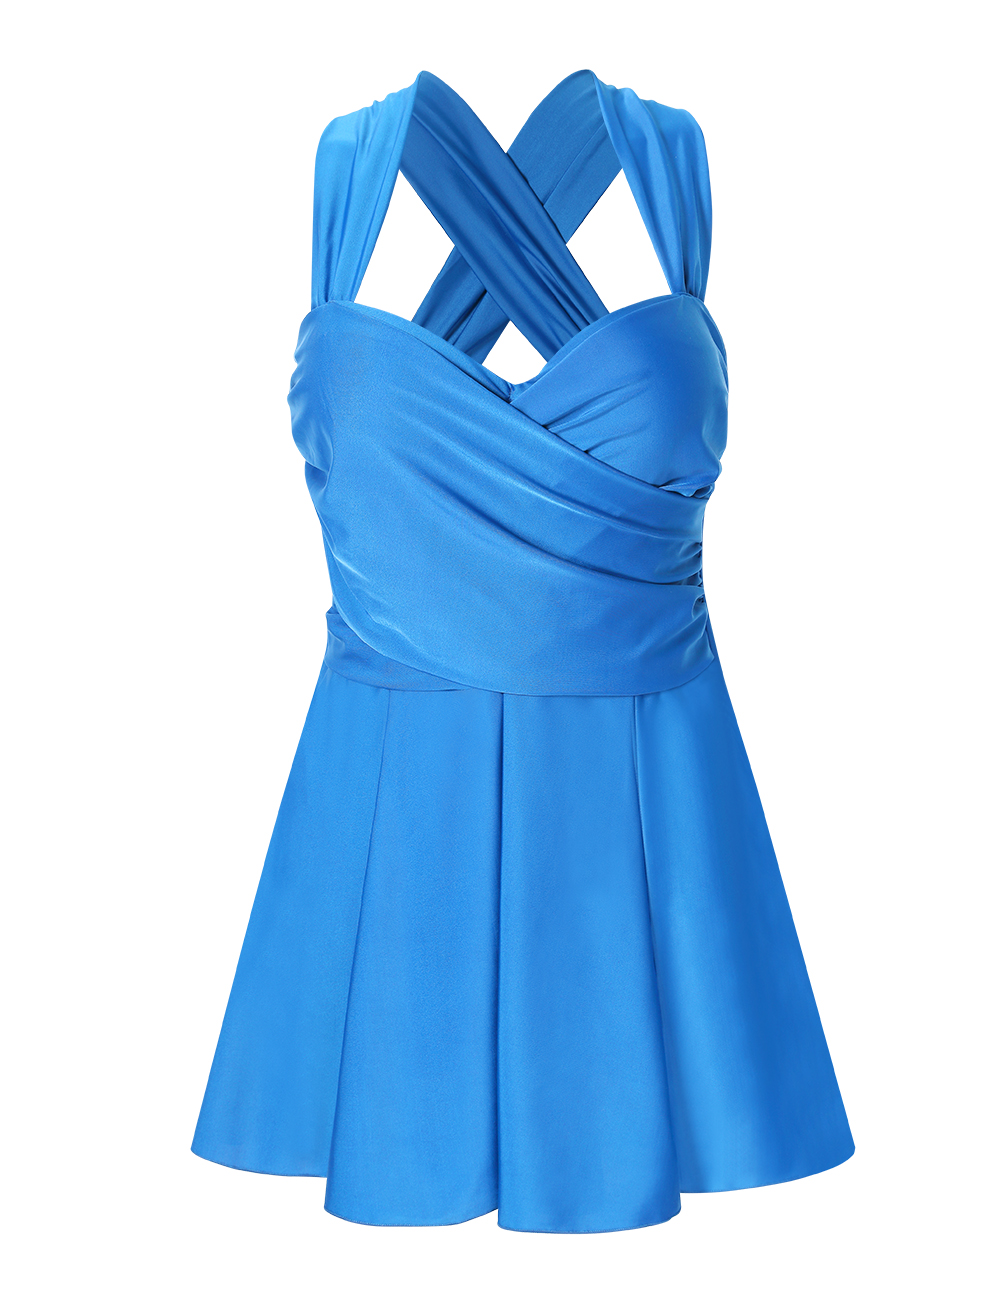 Women's Cross Back Shaping Body One-Piece Swim Dress Swimsuit Blue_XL